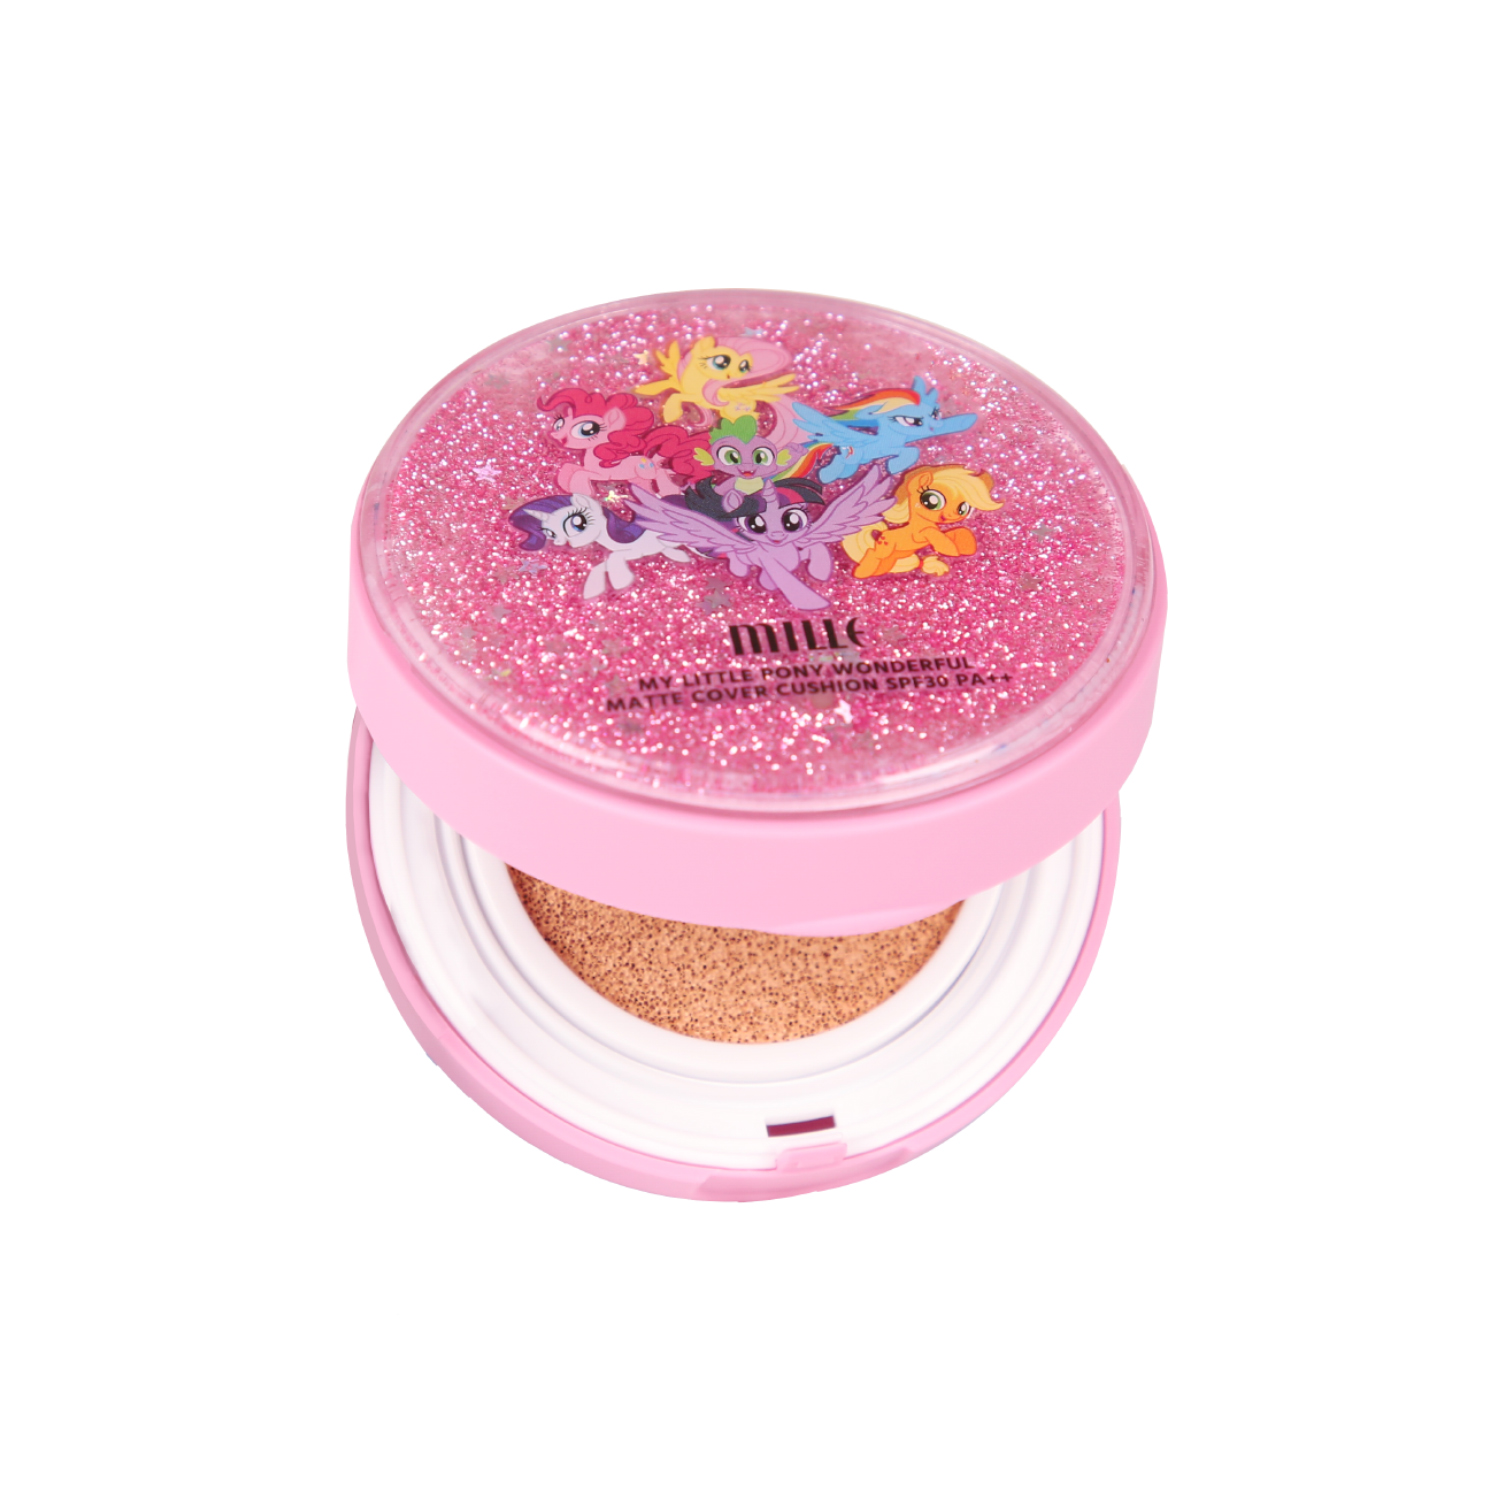 MILLE MY LITTLE PONY WONDERFUL MATTE COVER CUSHION SPF30 PA++ 12G.